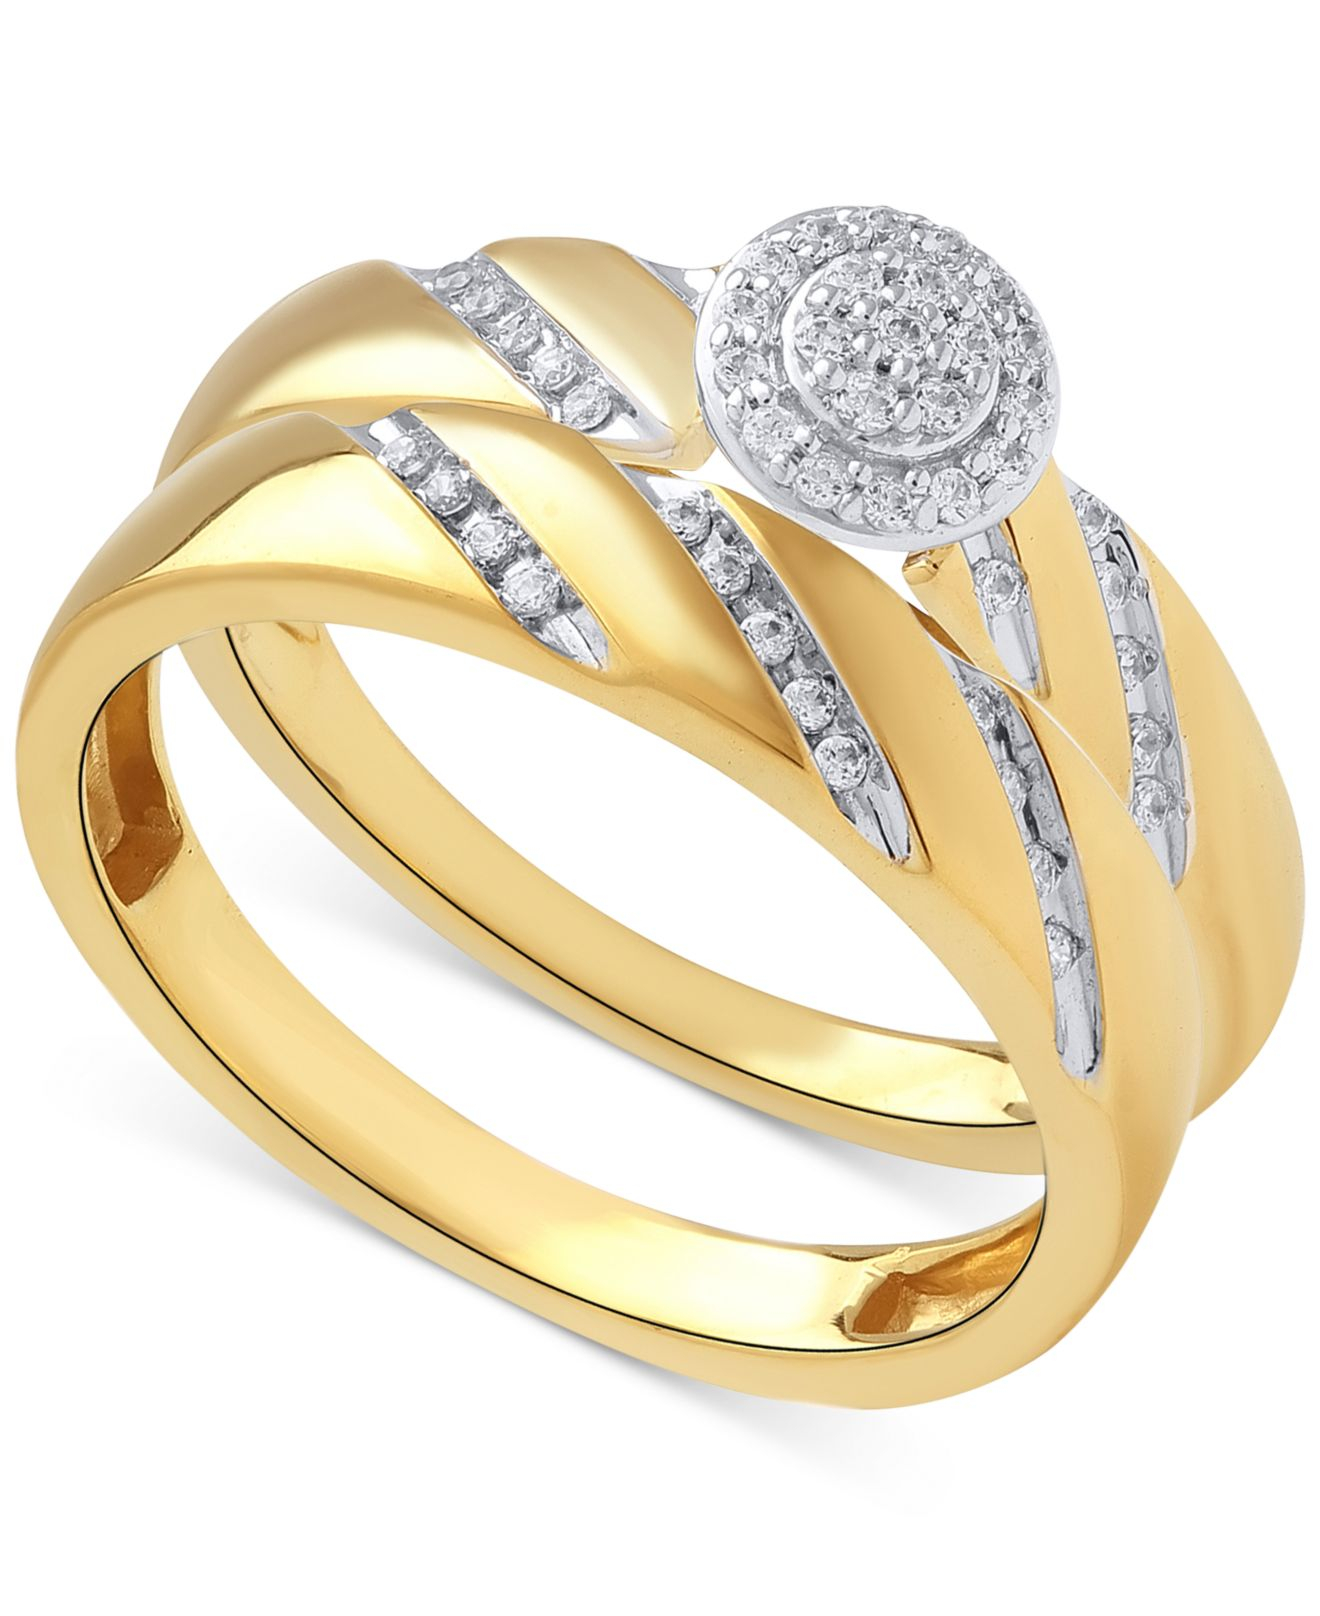 Halo Engagement Rings Macys